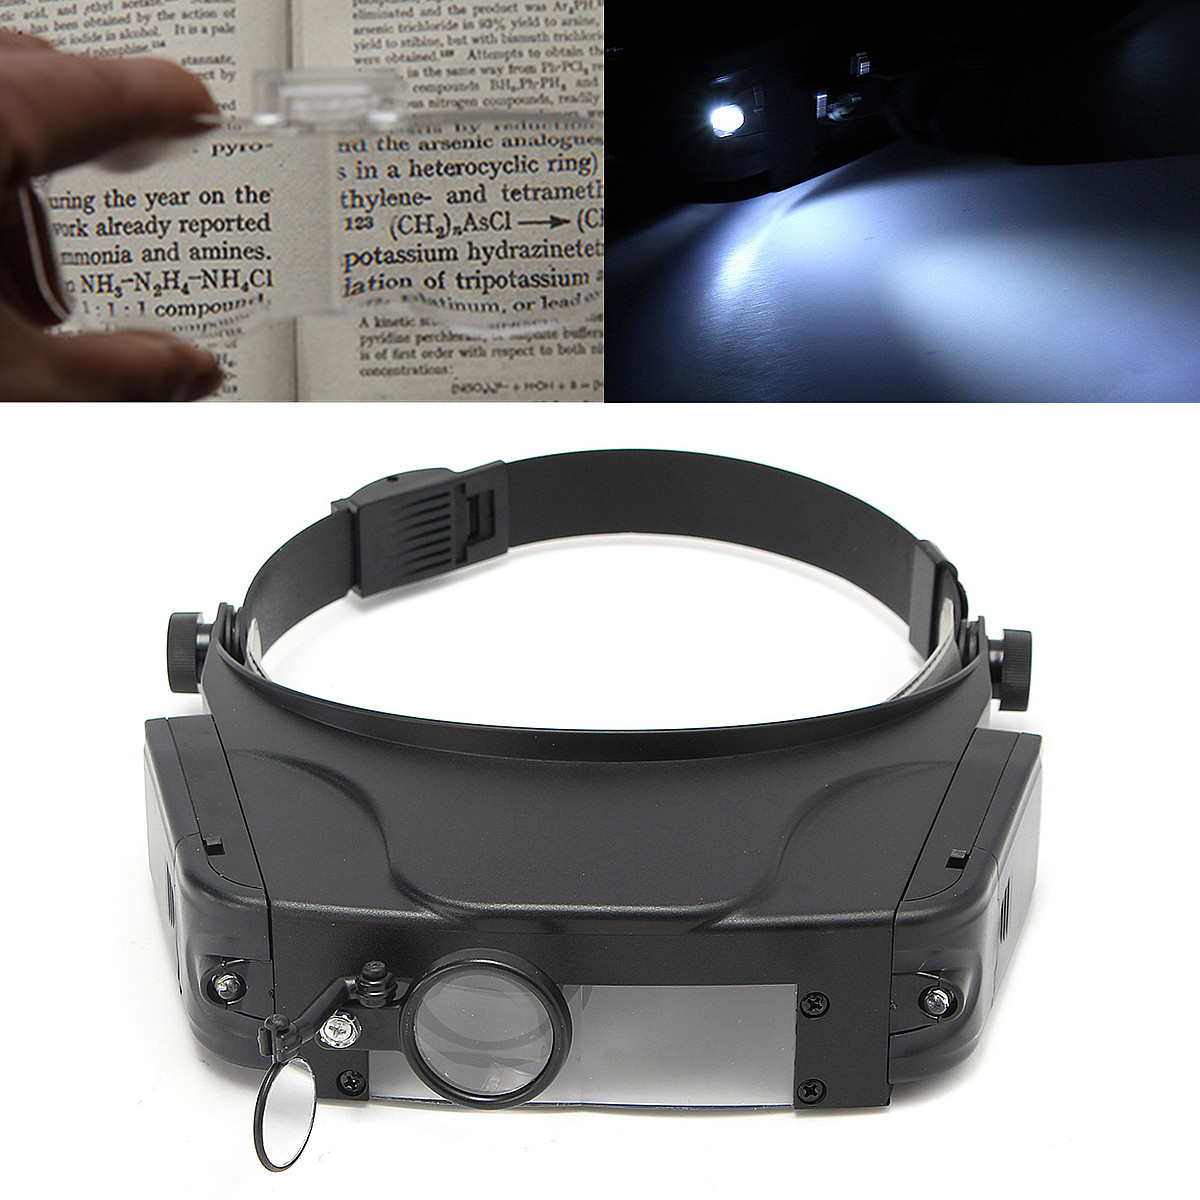 ZEAST Head-wearing Repairing Magnifier Optical Glasses Head Band Loupe Magnifying With LED Light for Repairing Jeweler, Reading